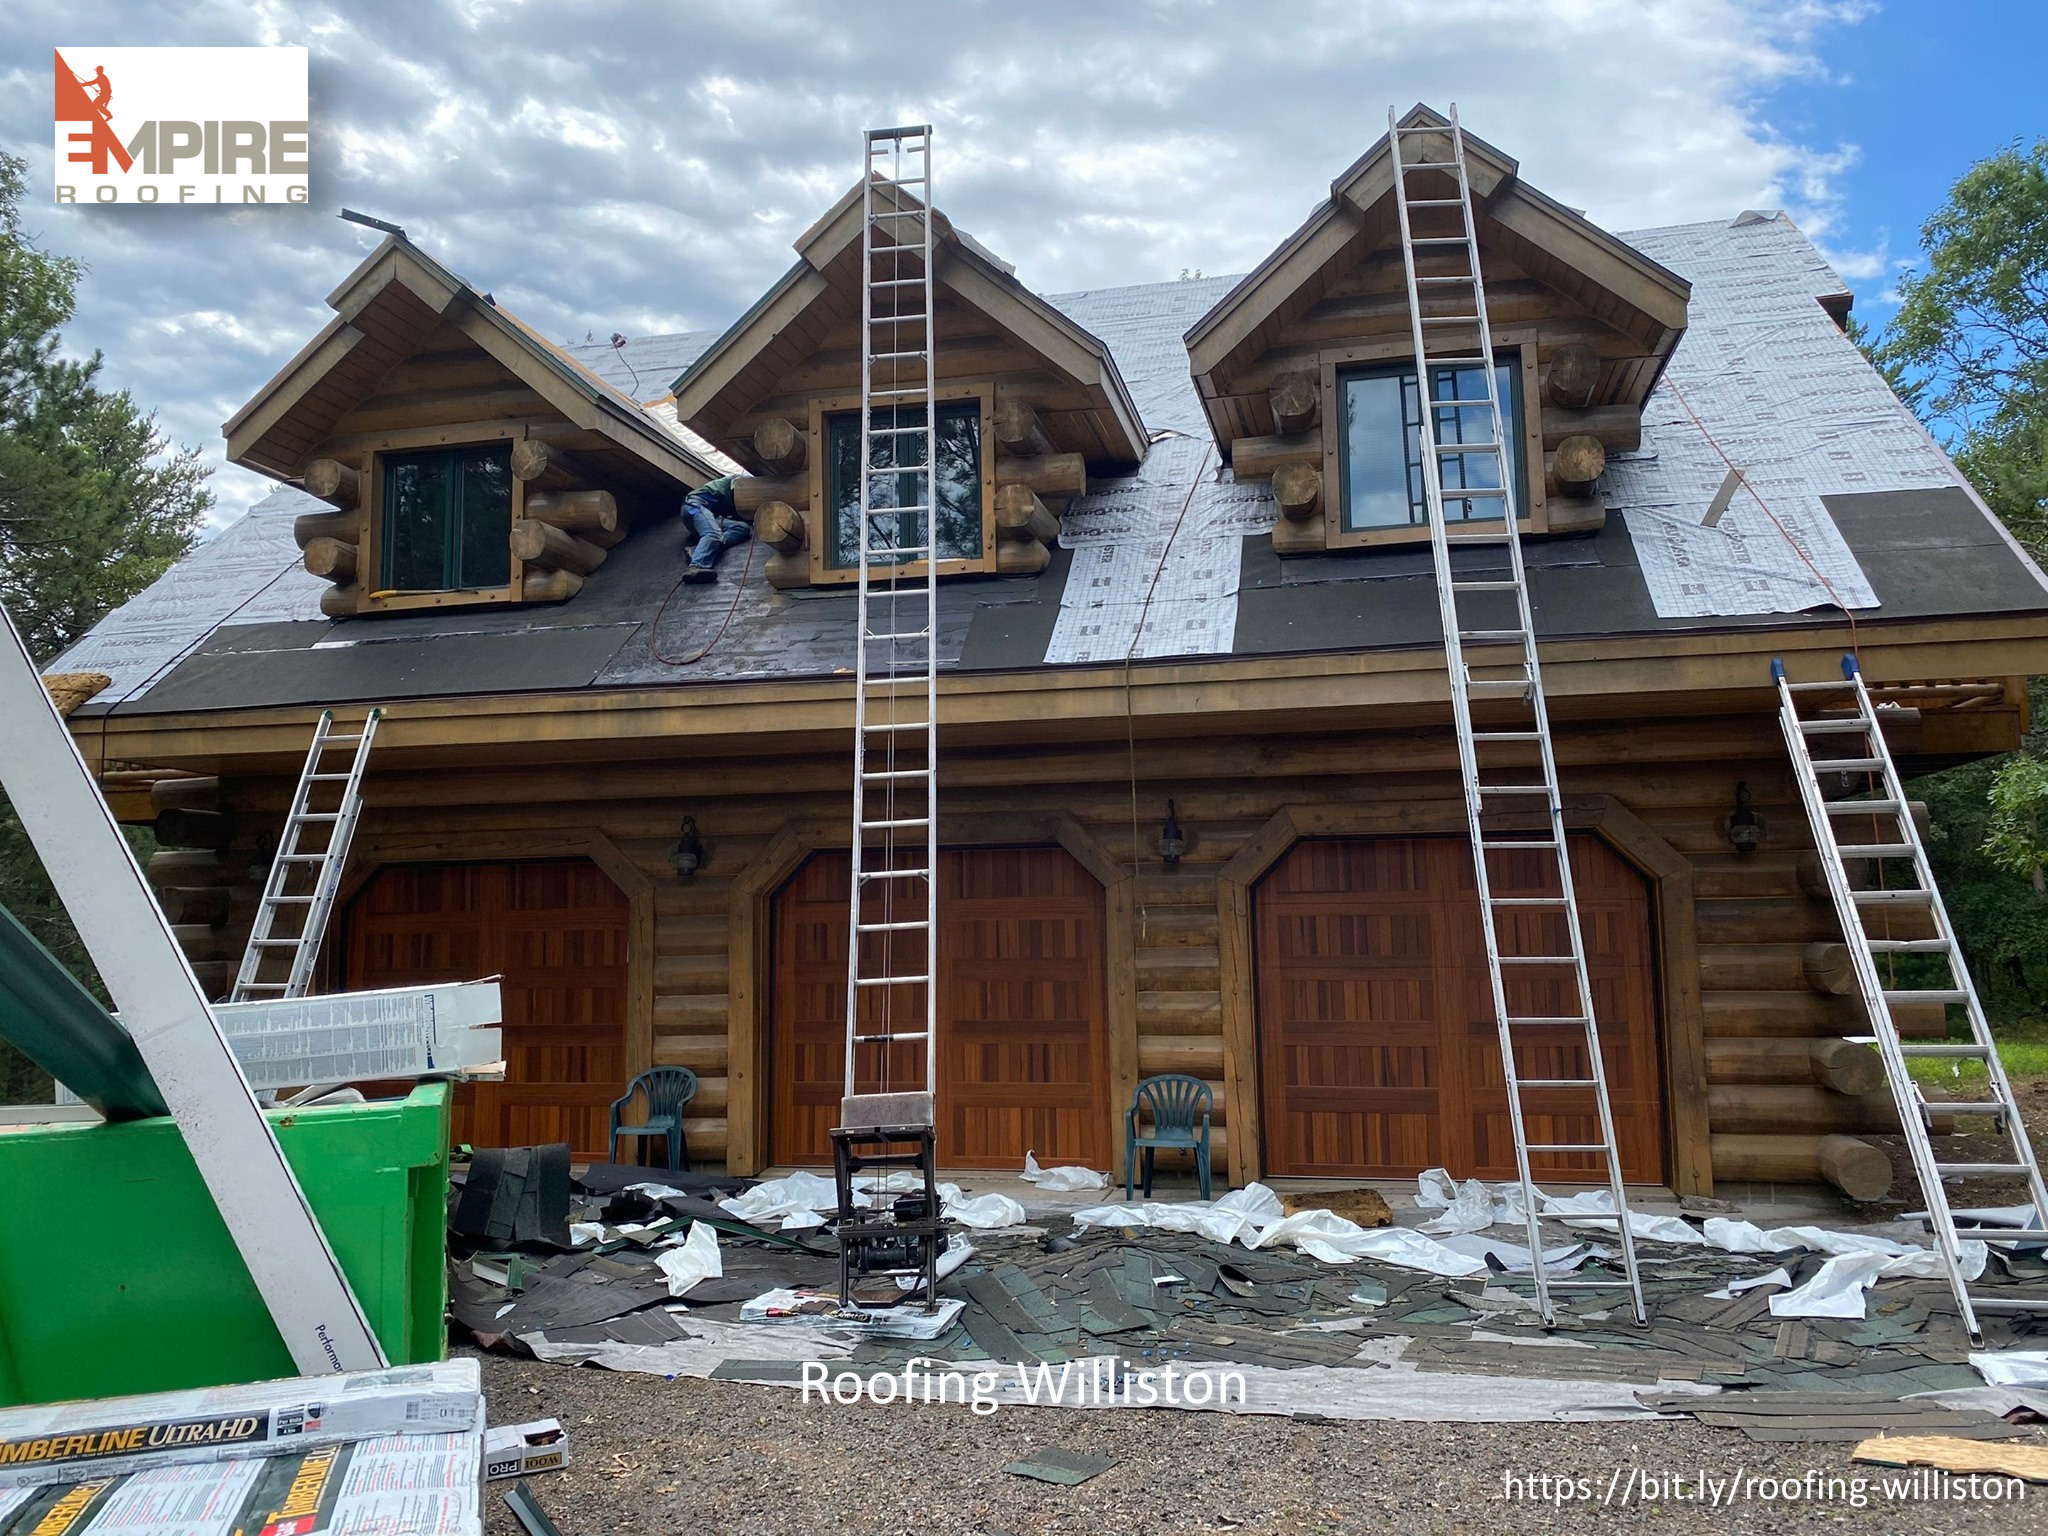 Empire Roofing Outlines Why Clients Choose Them